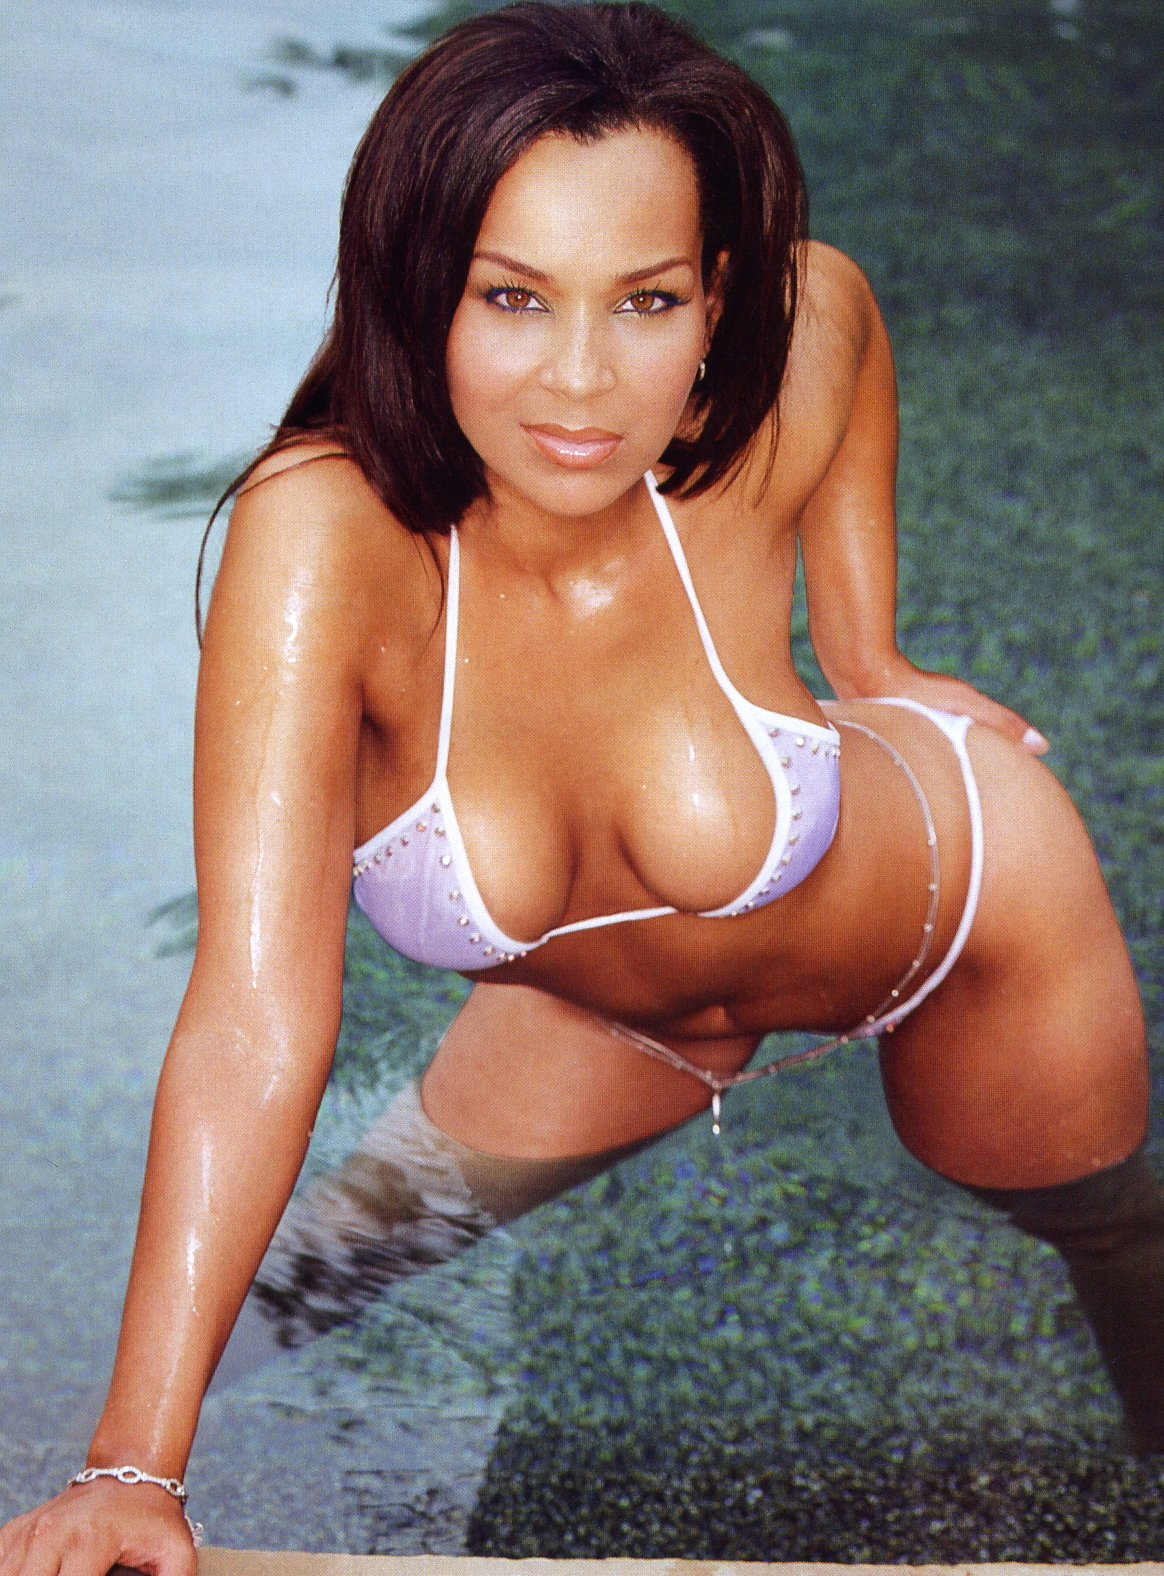 related pics: lisa raye butt naked - Rude